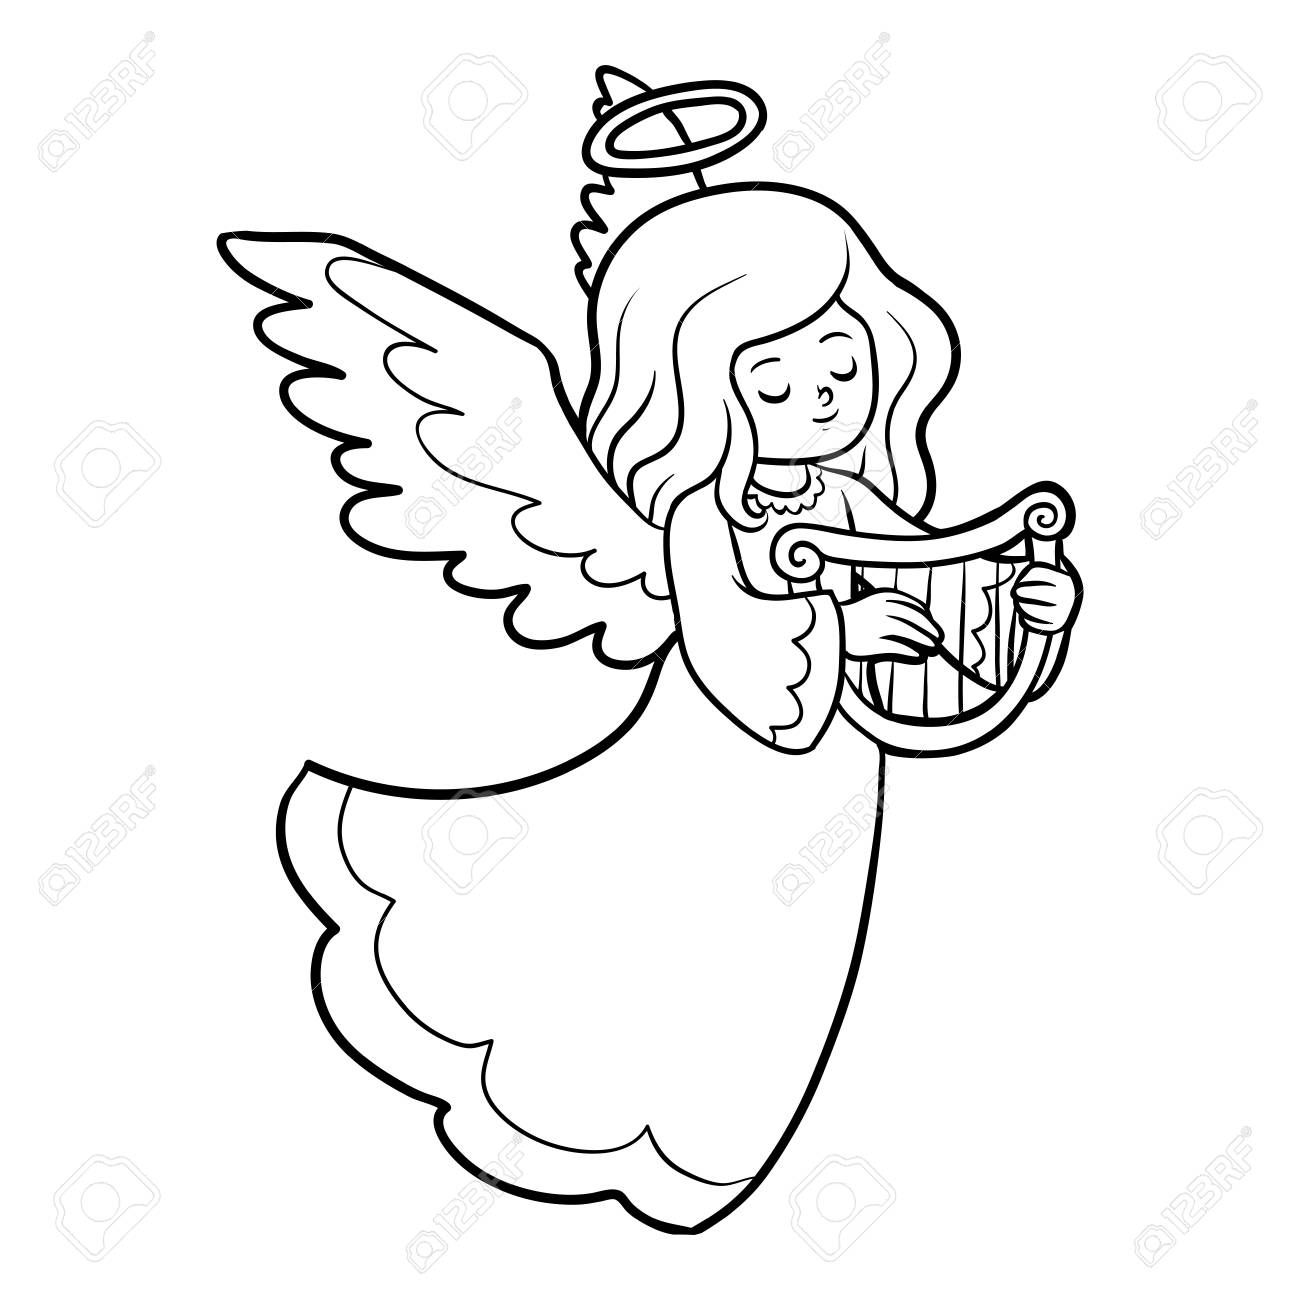 Coloring book for children, Angel with harp.